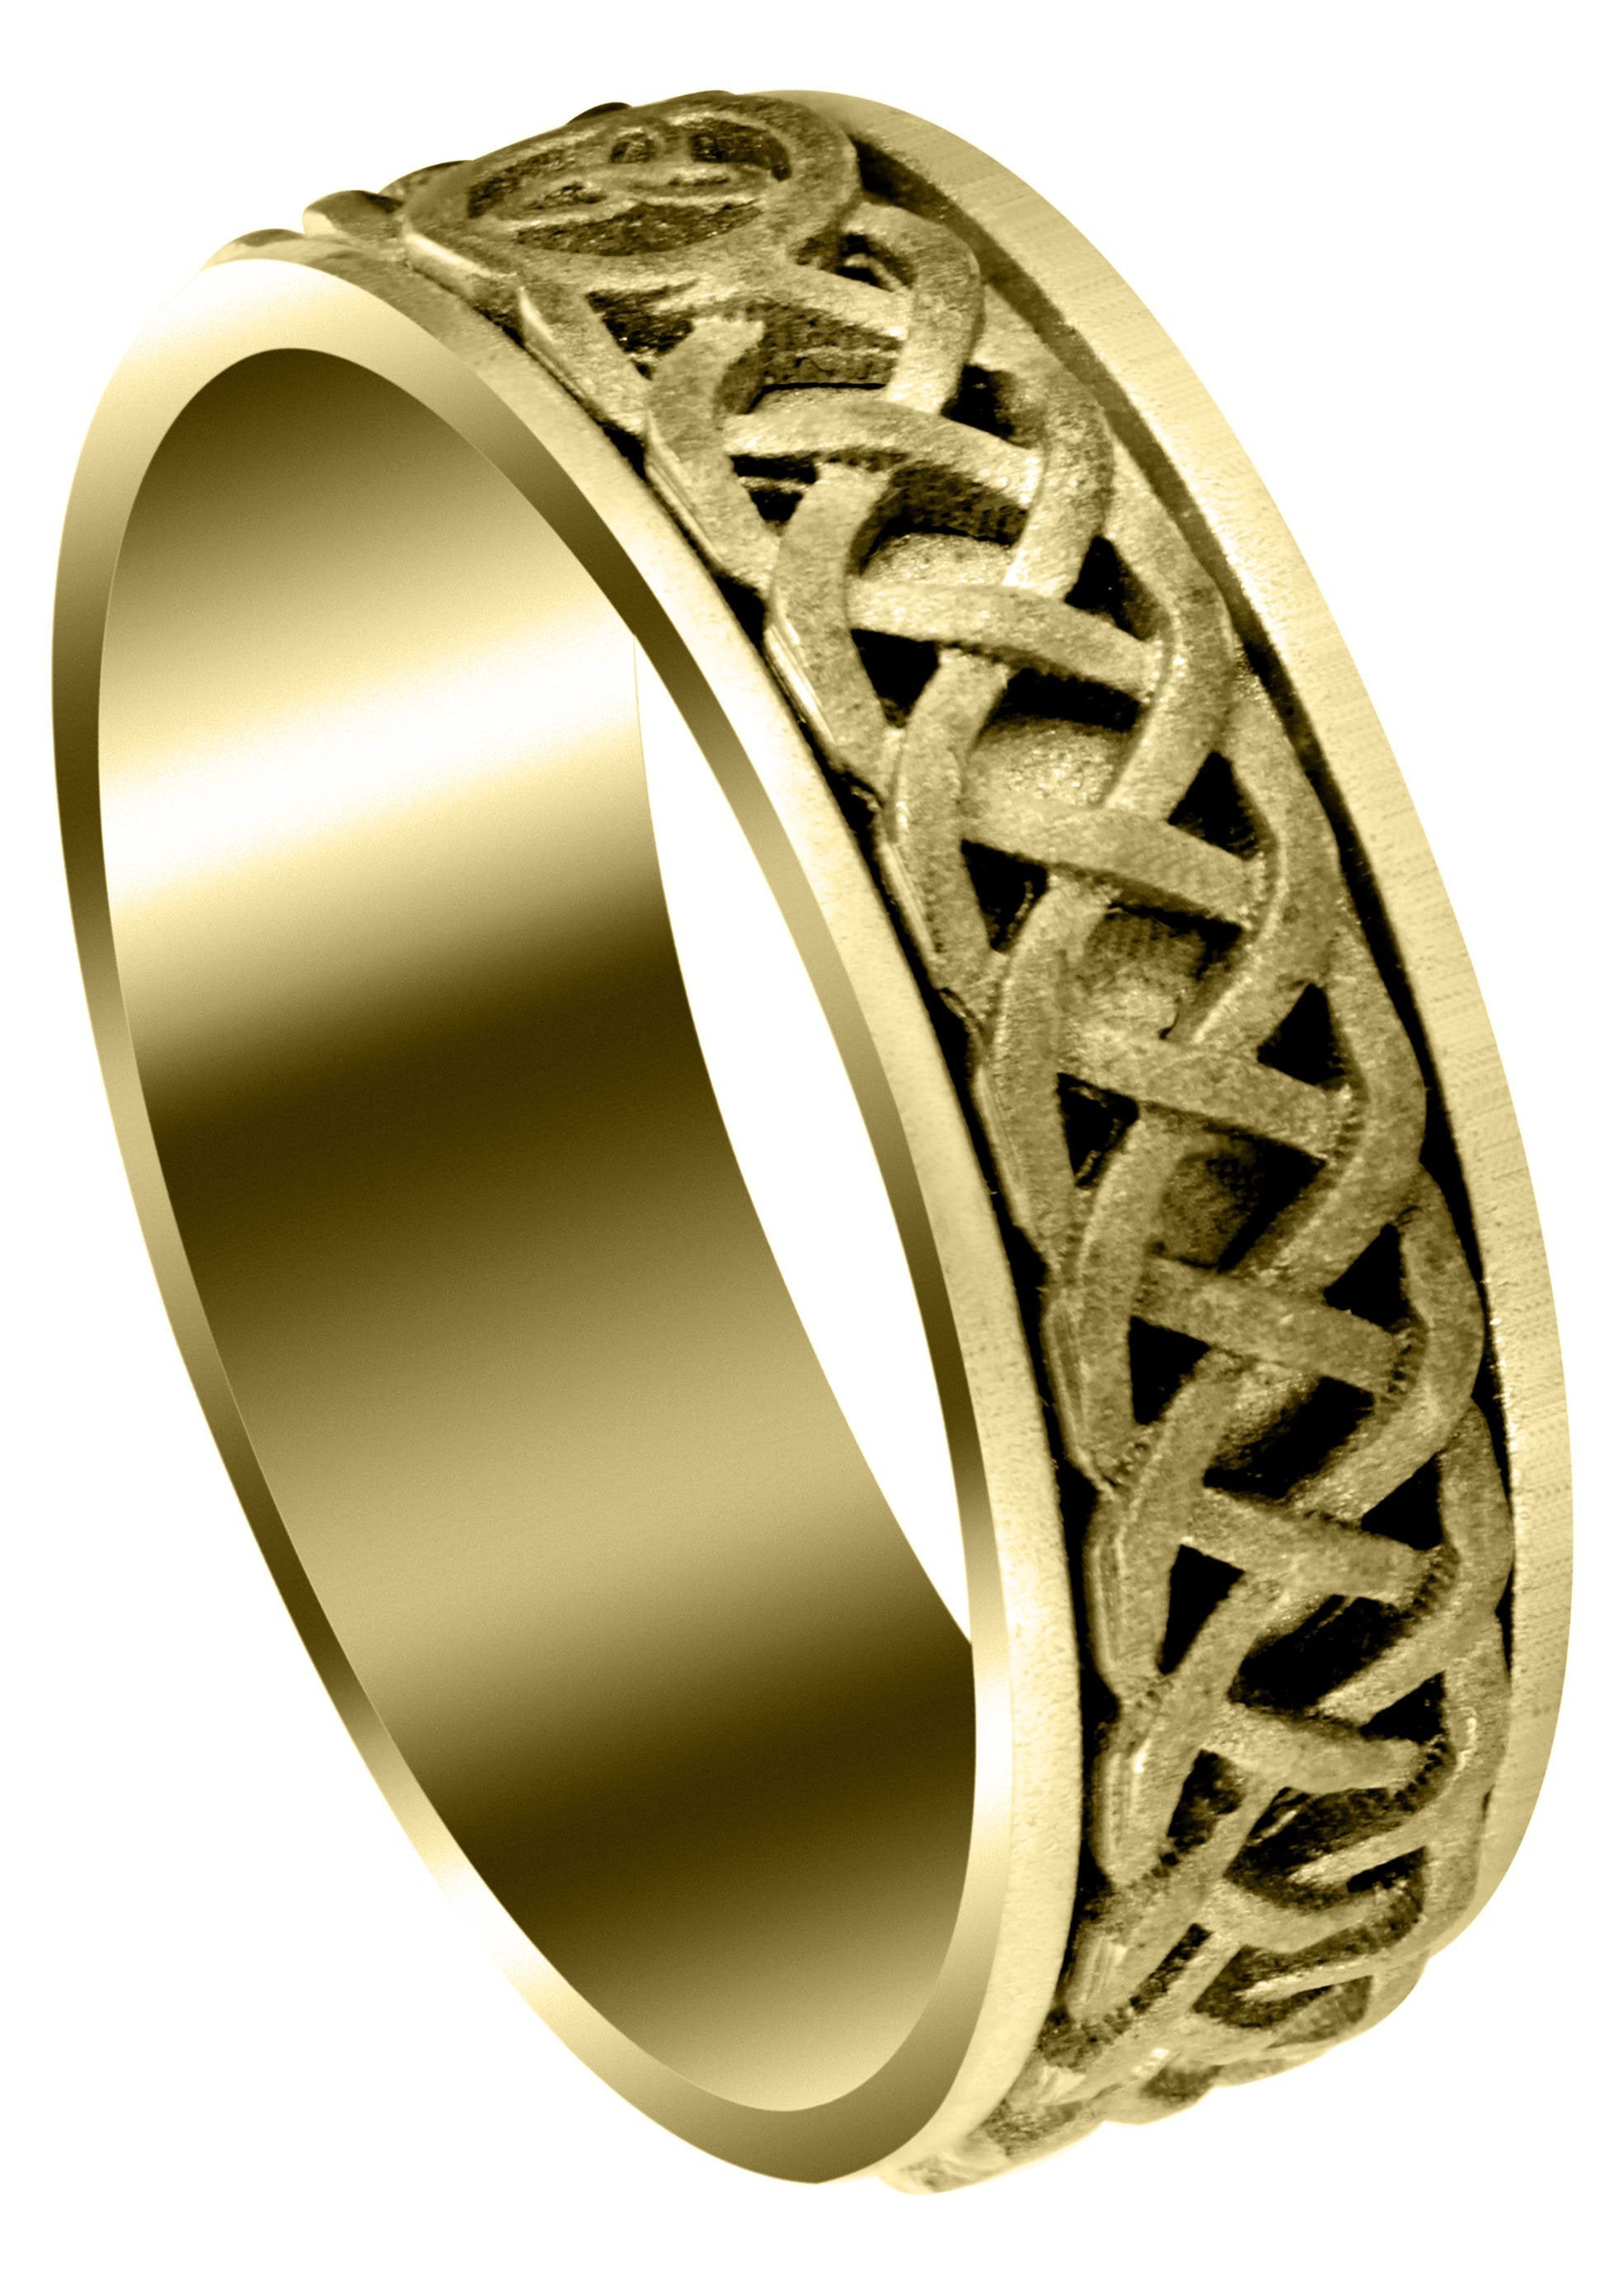 It is a graphic of Yellow Gold Celtic Mens Wedding Band Sand Blast Finish (Cooper